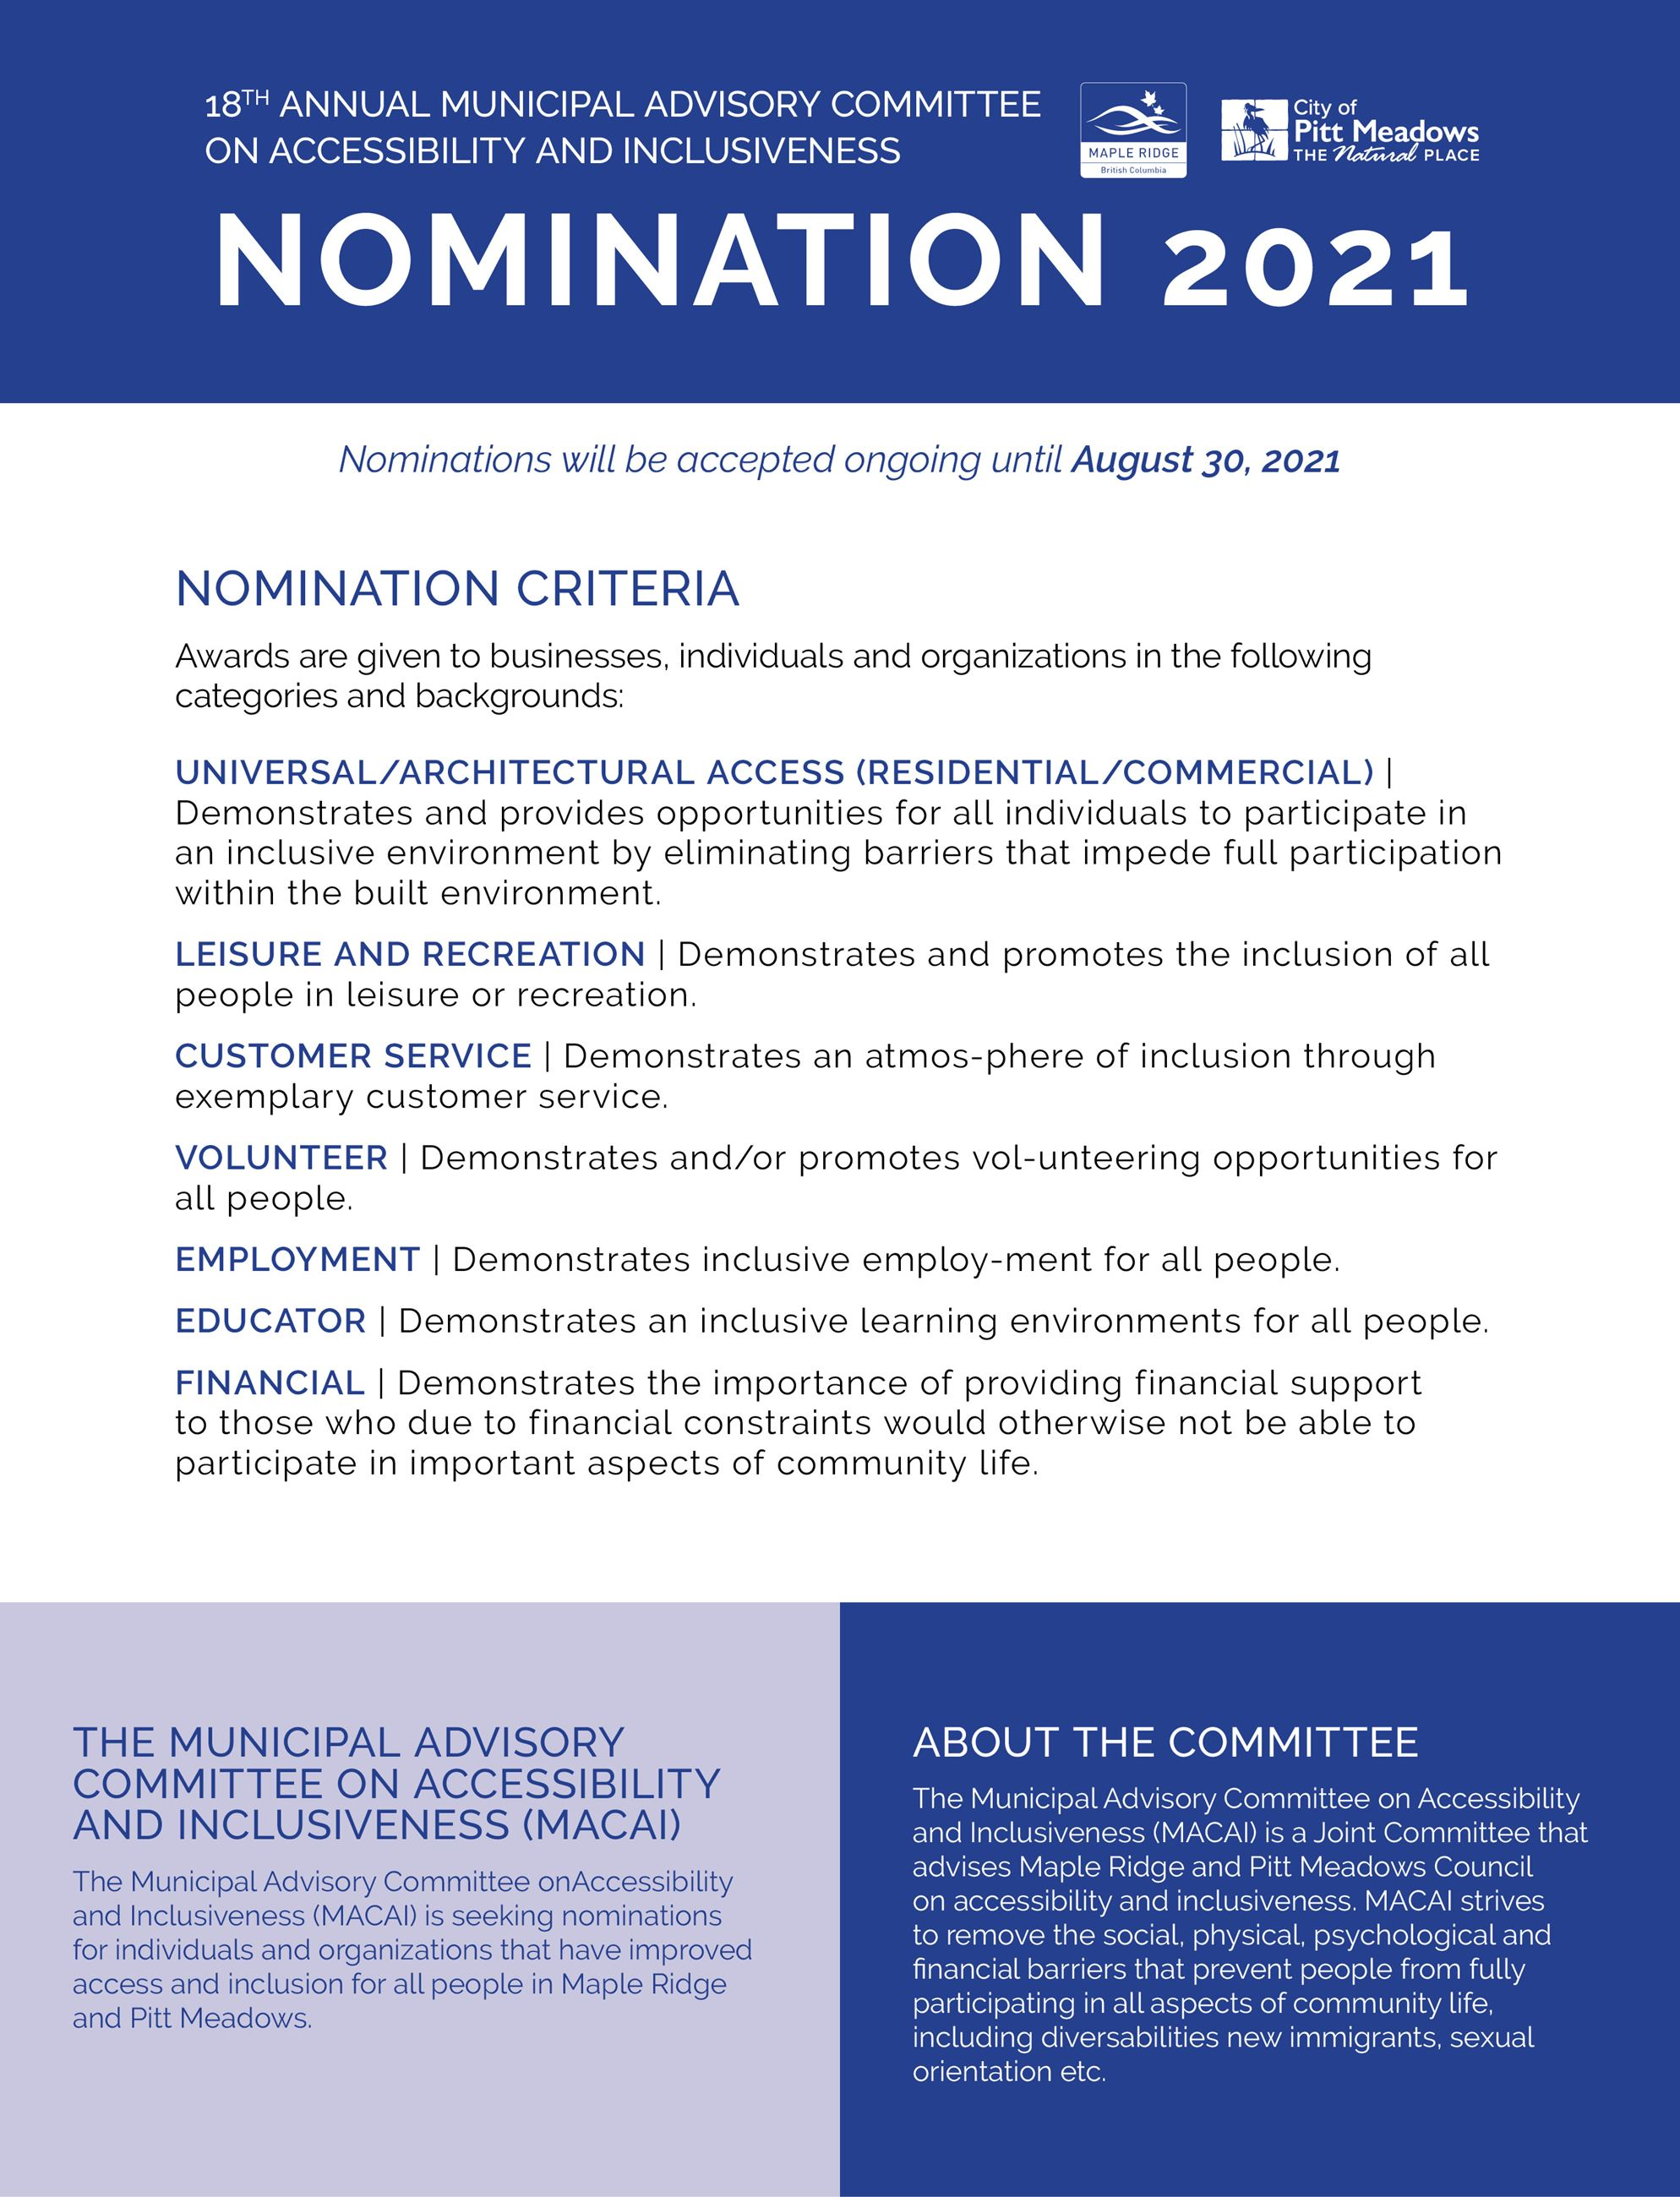 MACAI_Nominations_WebGraphic